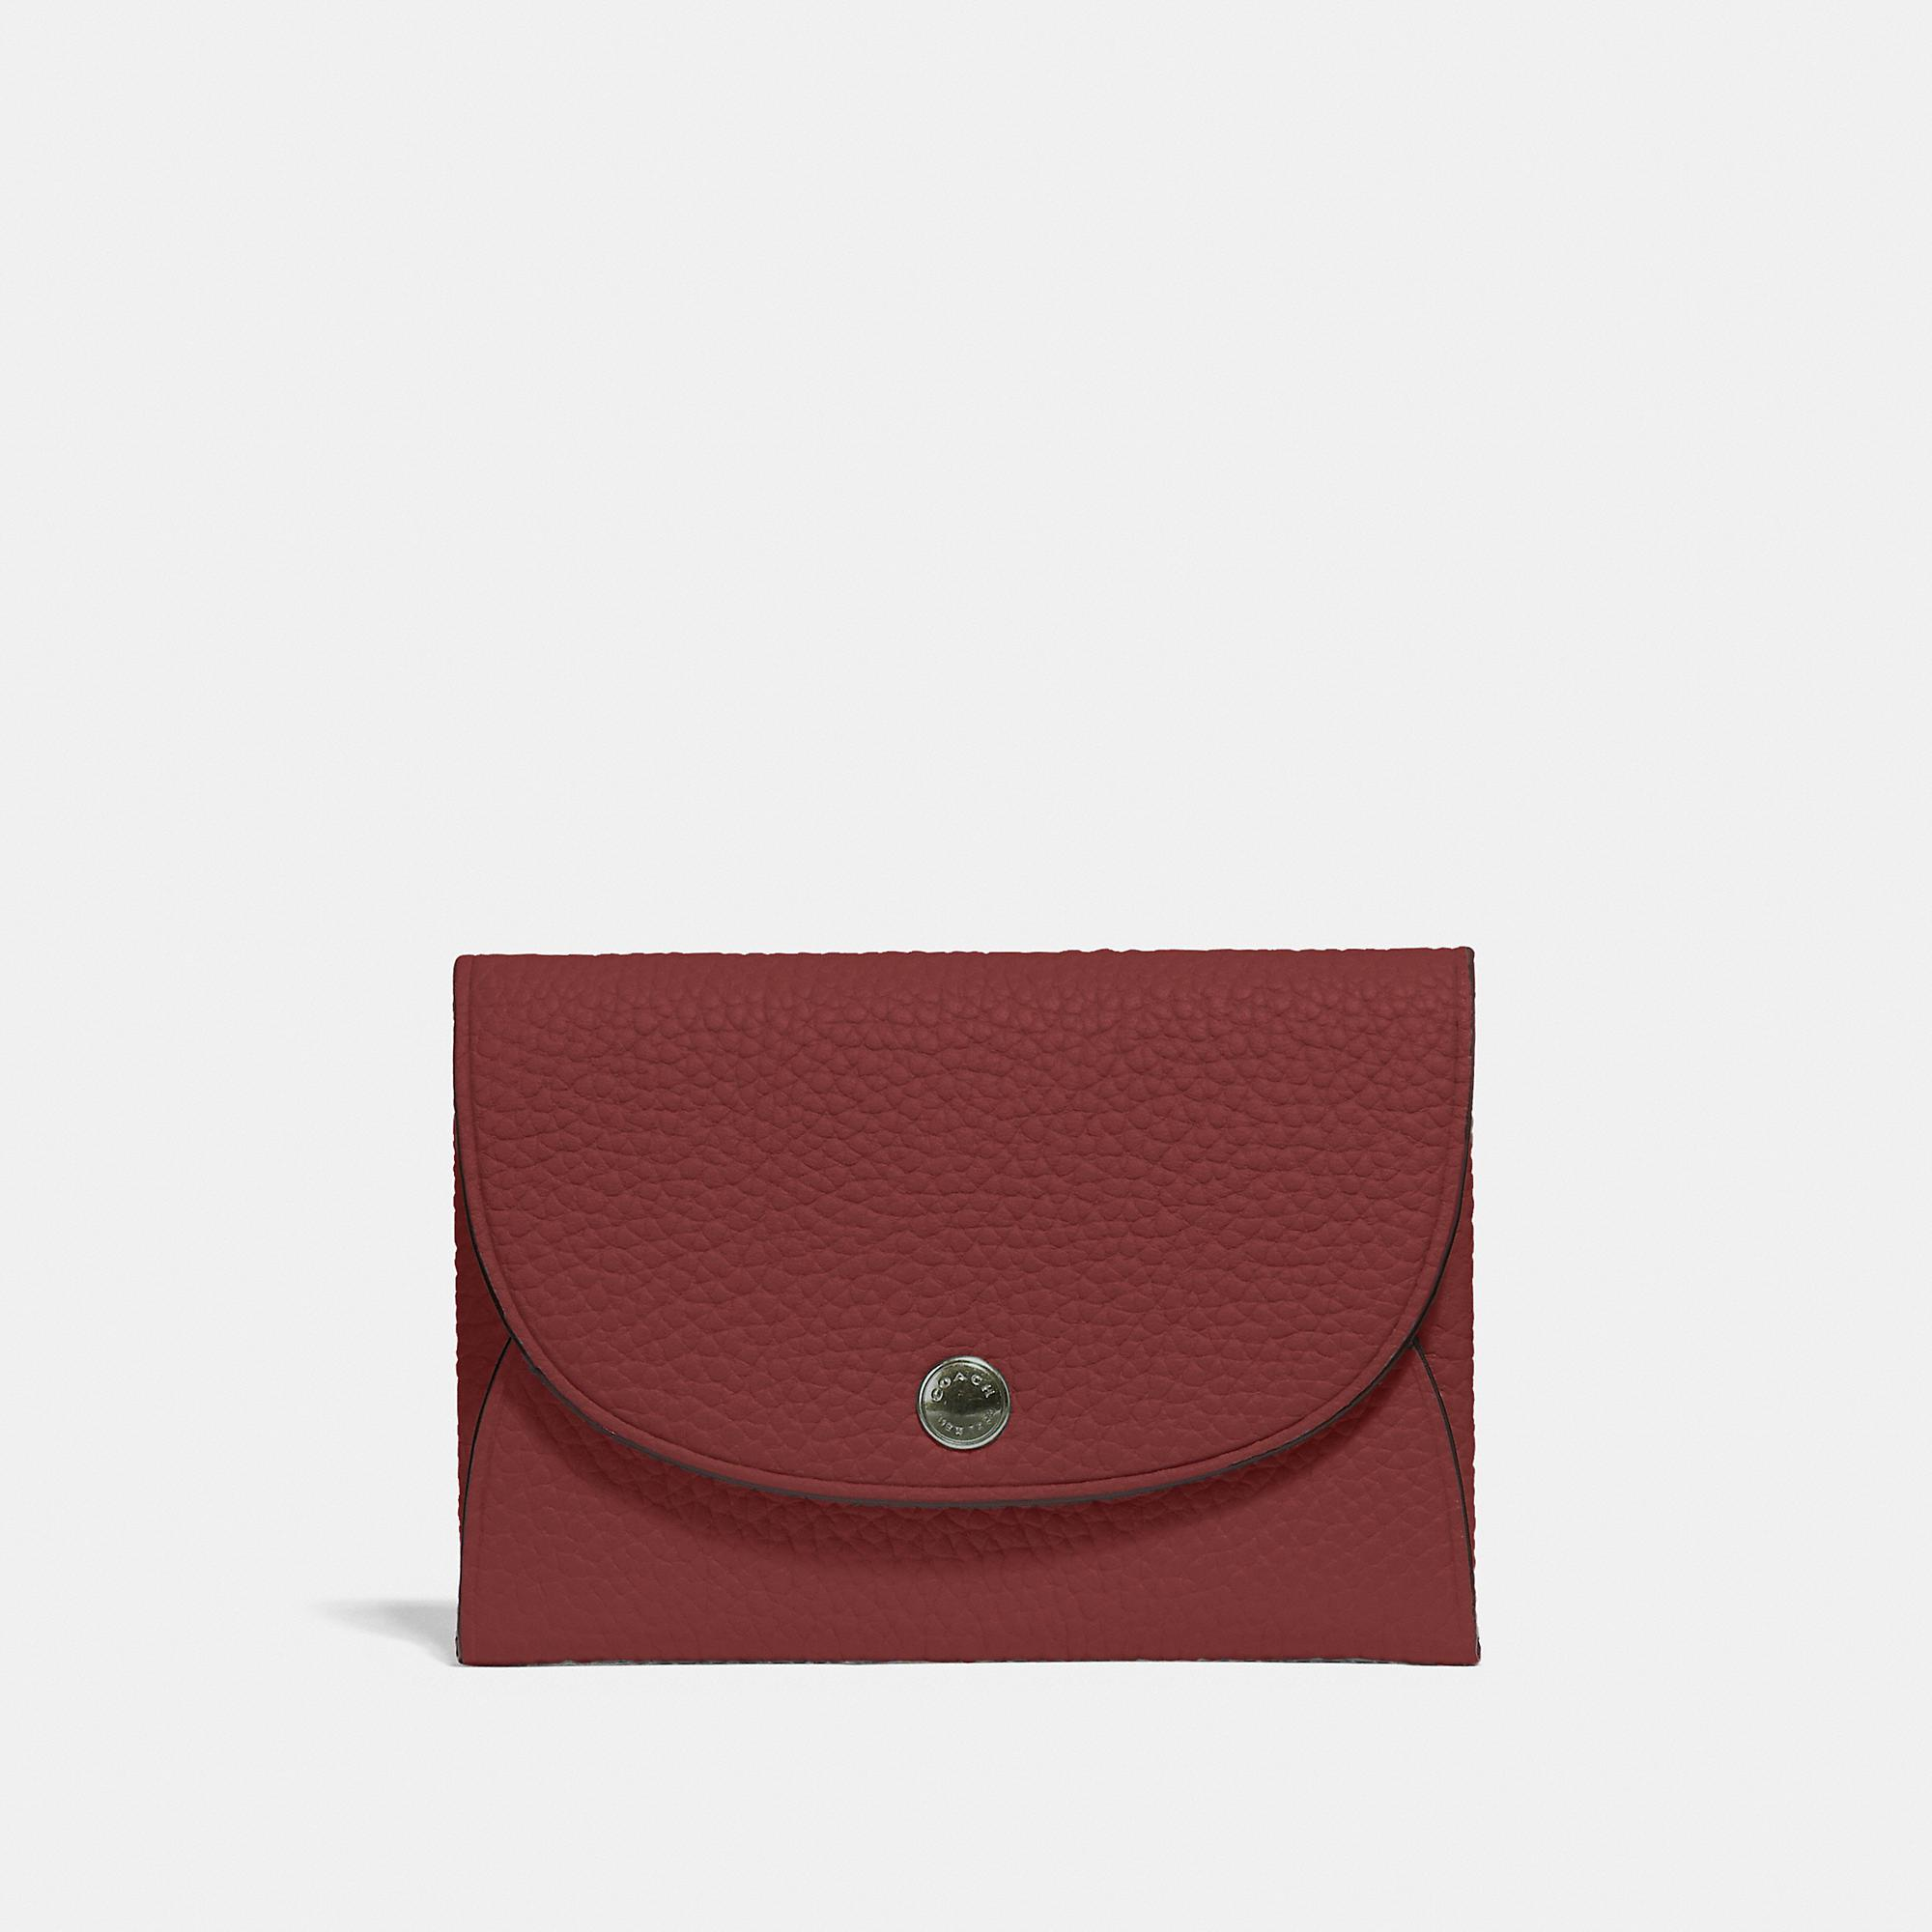 113bc5b7ed Lyst - COACH Snap Card Case In Colorblock in Red for Men